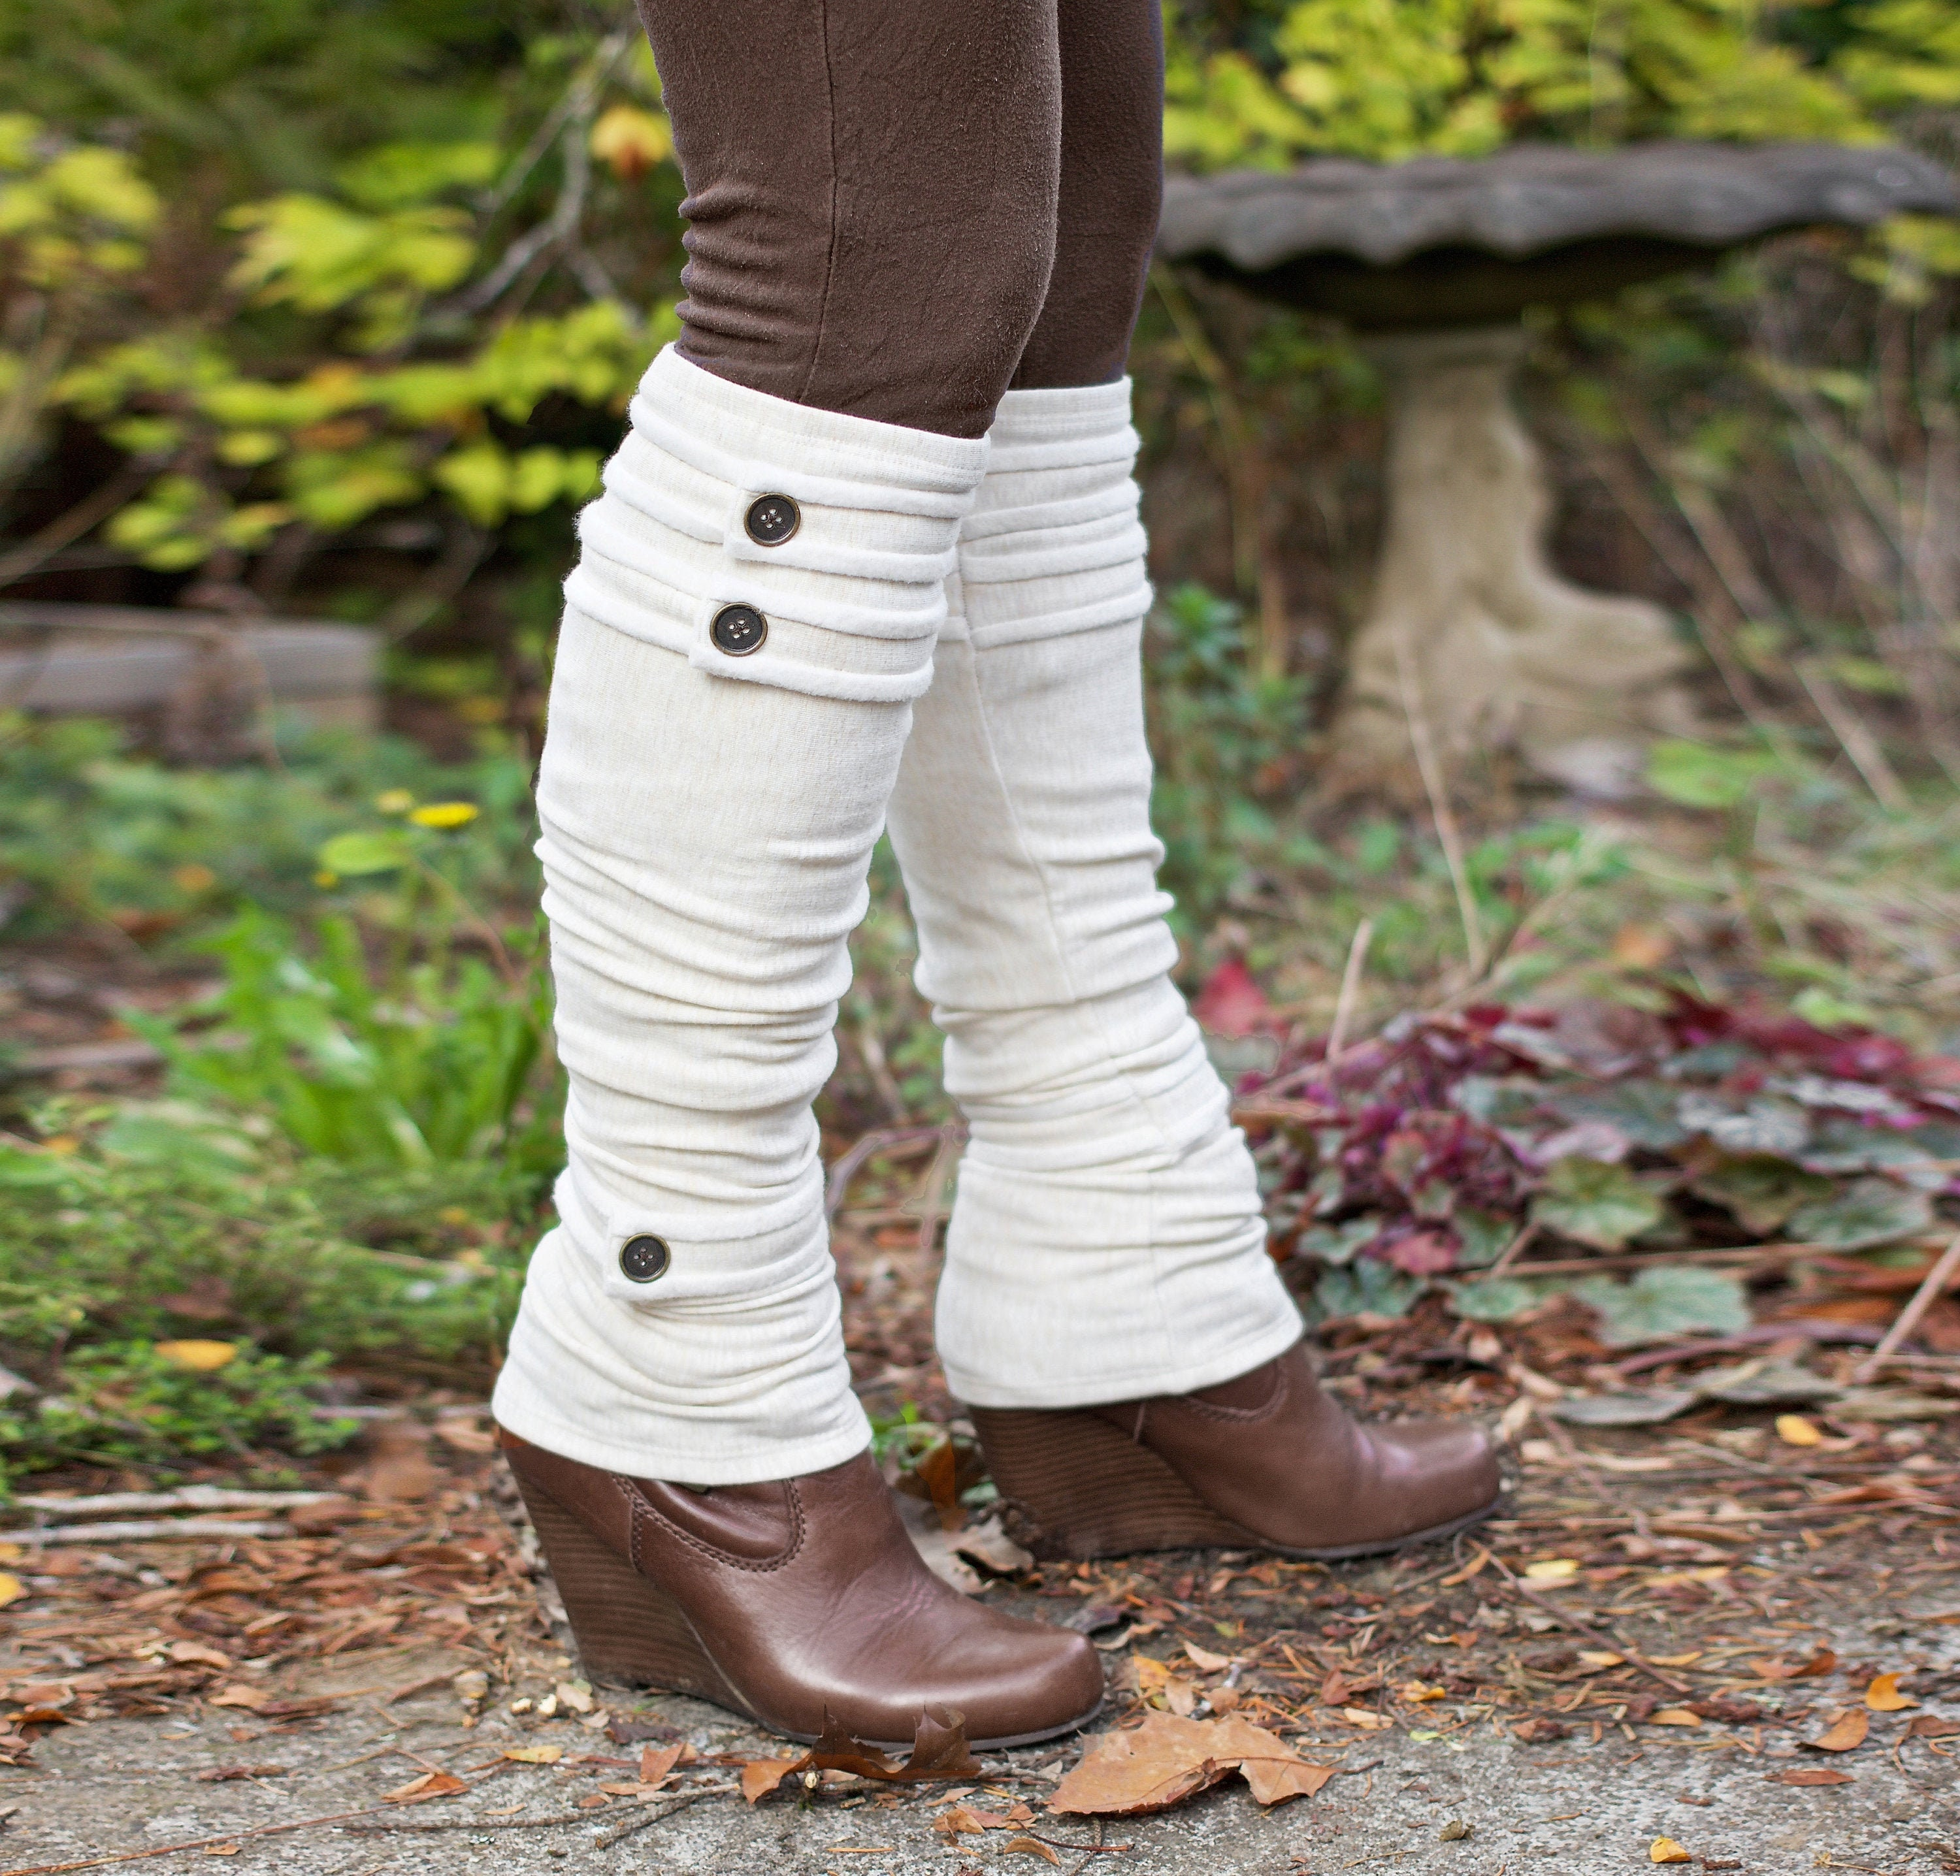 Spats, Gaiters, Puttees – Vintage Shoes Covers Knee High Leg Warmers - Spats With Buttons Eco Friendly Bamboo Fleece $52.00 AT vintagedancer.com